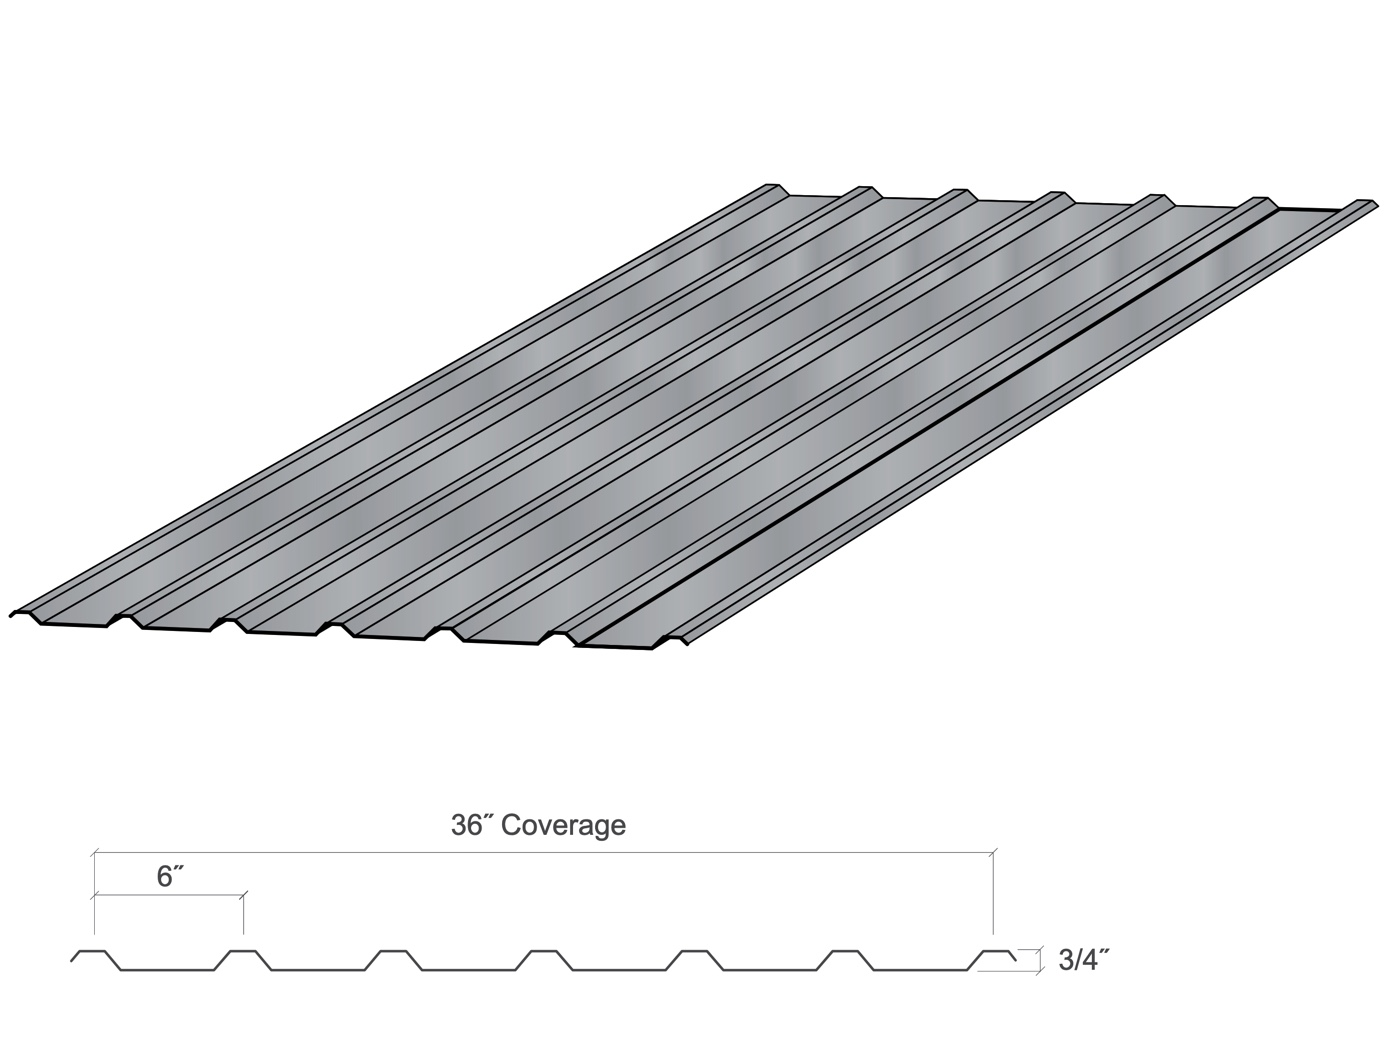 Diagram of U panel roof section with measurements labeled.